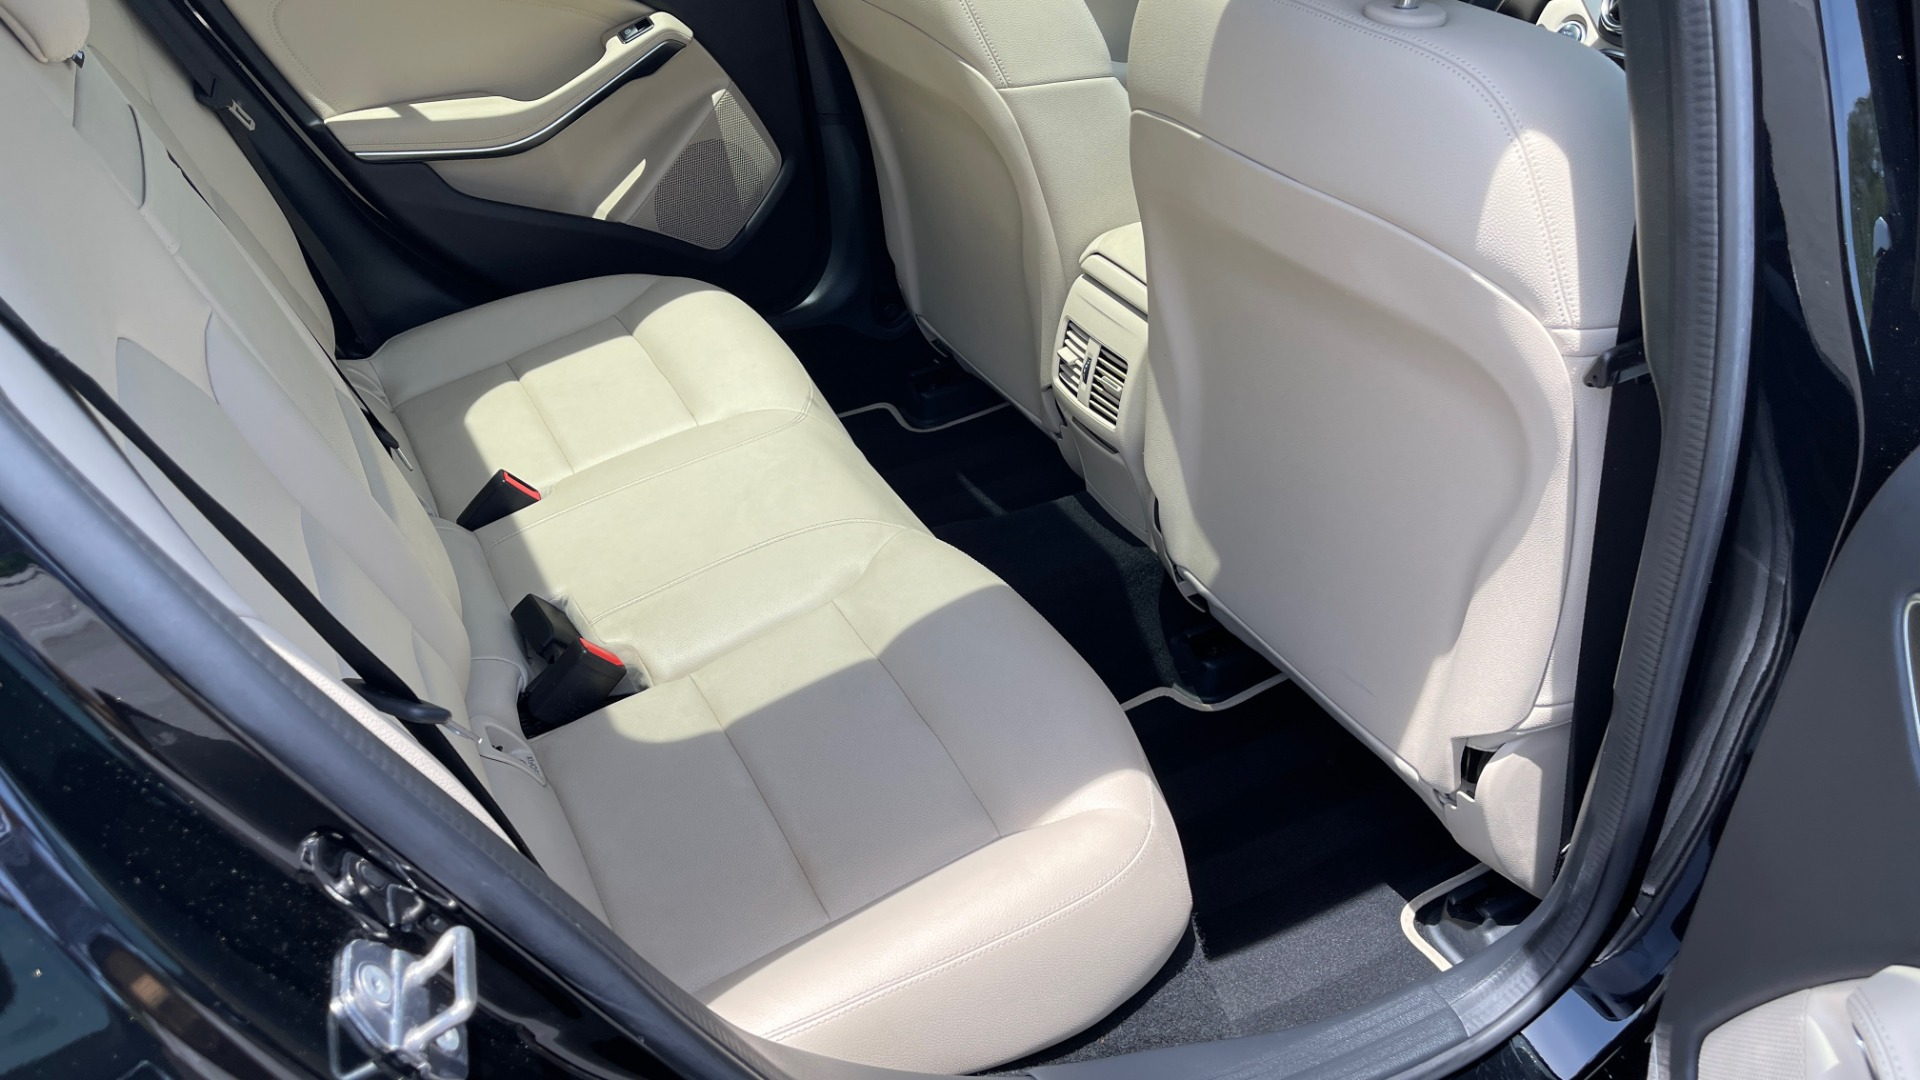 Used 2018 Mercedes-Benz GLA 250 4MATIC SUV / PANO-ROOF / HTD STS / BLIND SPOT ASST / APPLE for sale $31,995 at Formula Imports in Charlotte NC 28227 71